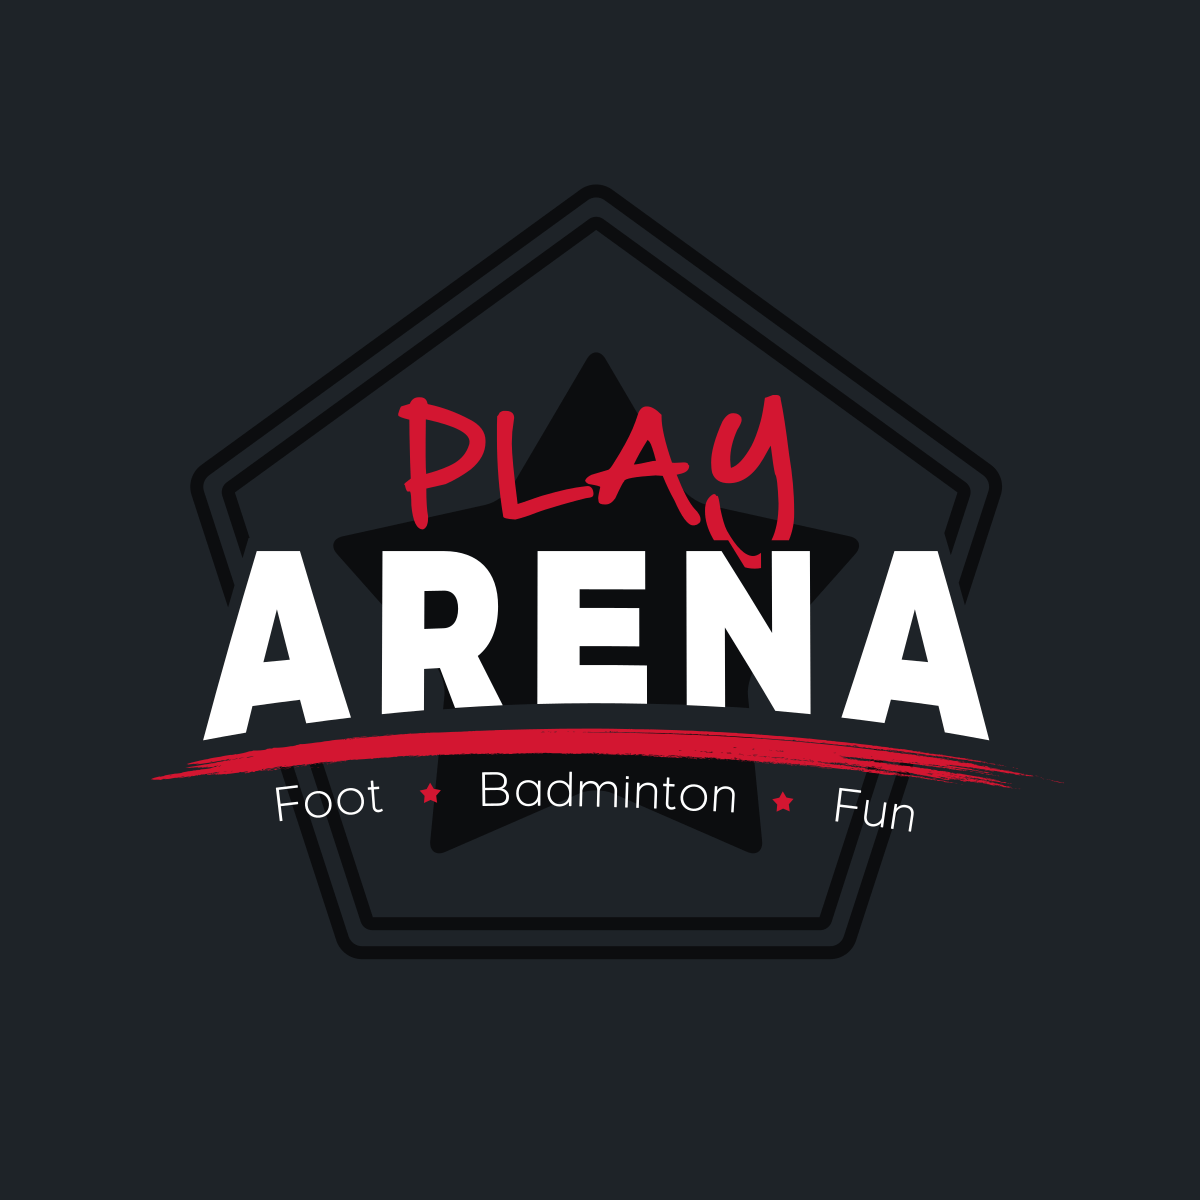 Image Play Arena